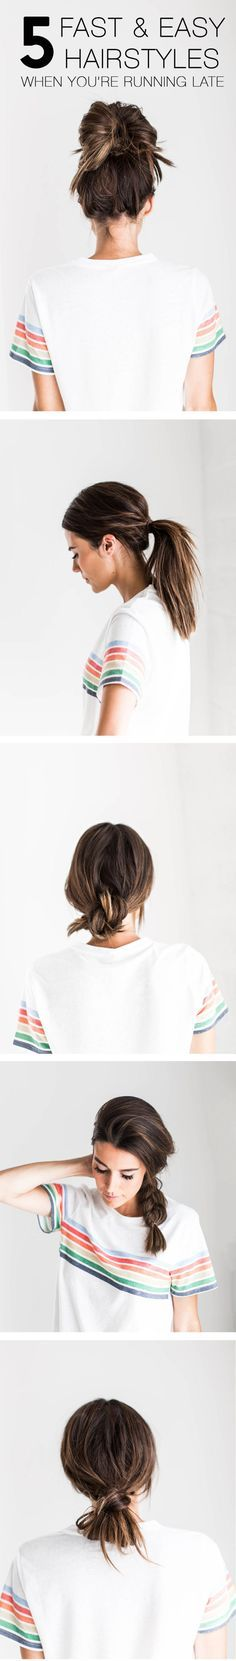 5 messy hairstyles for when you are running late